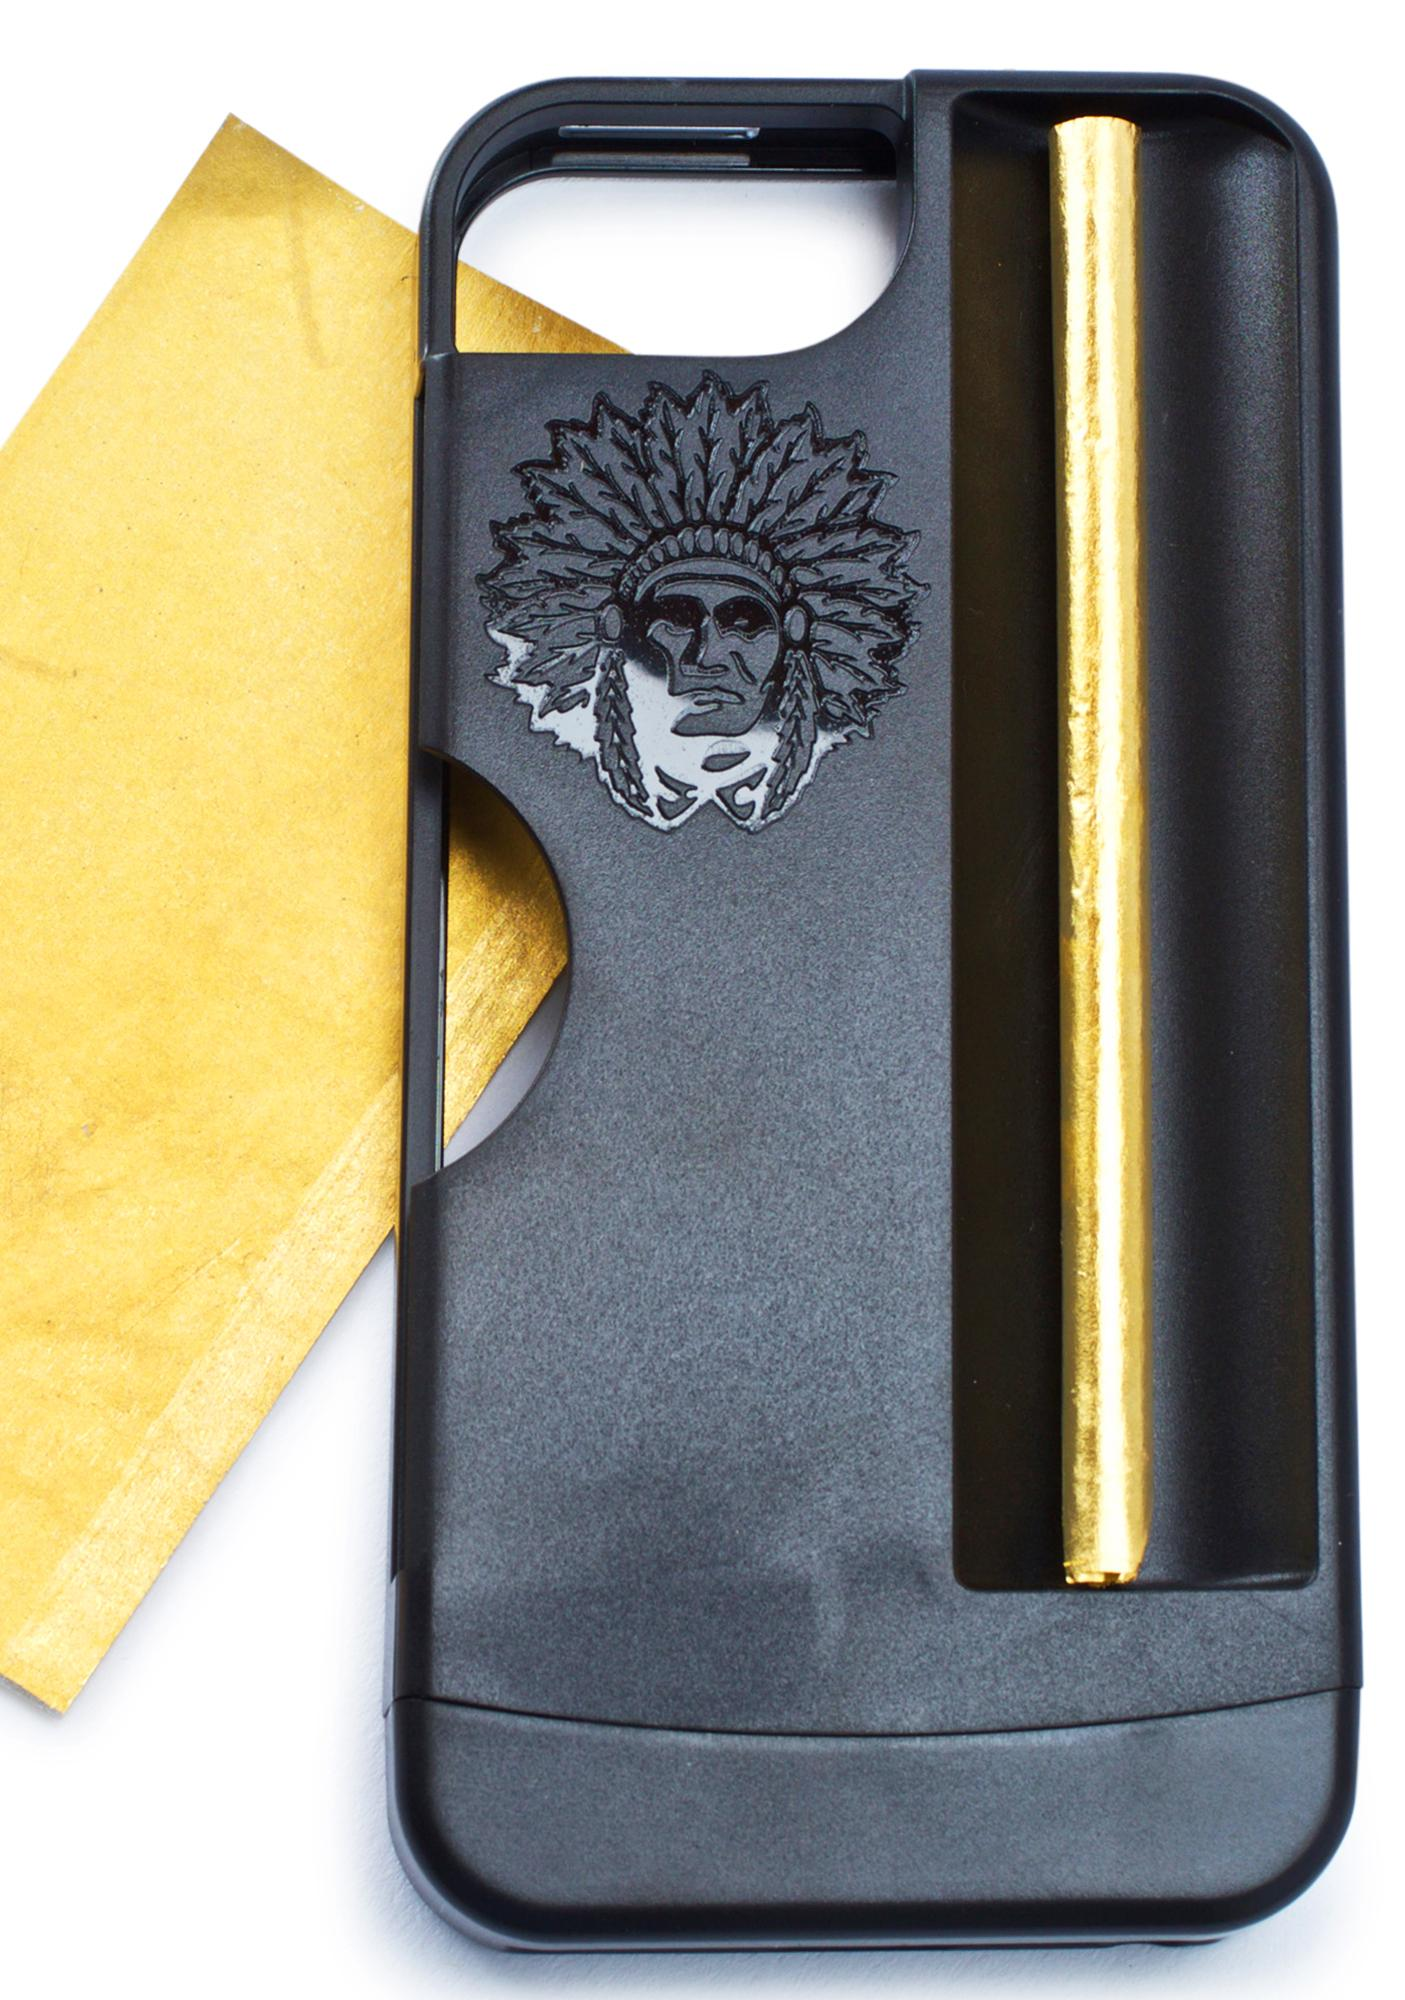 iChief Rolling Tray iPhone 5/5S Case